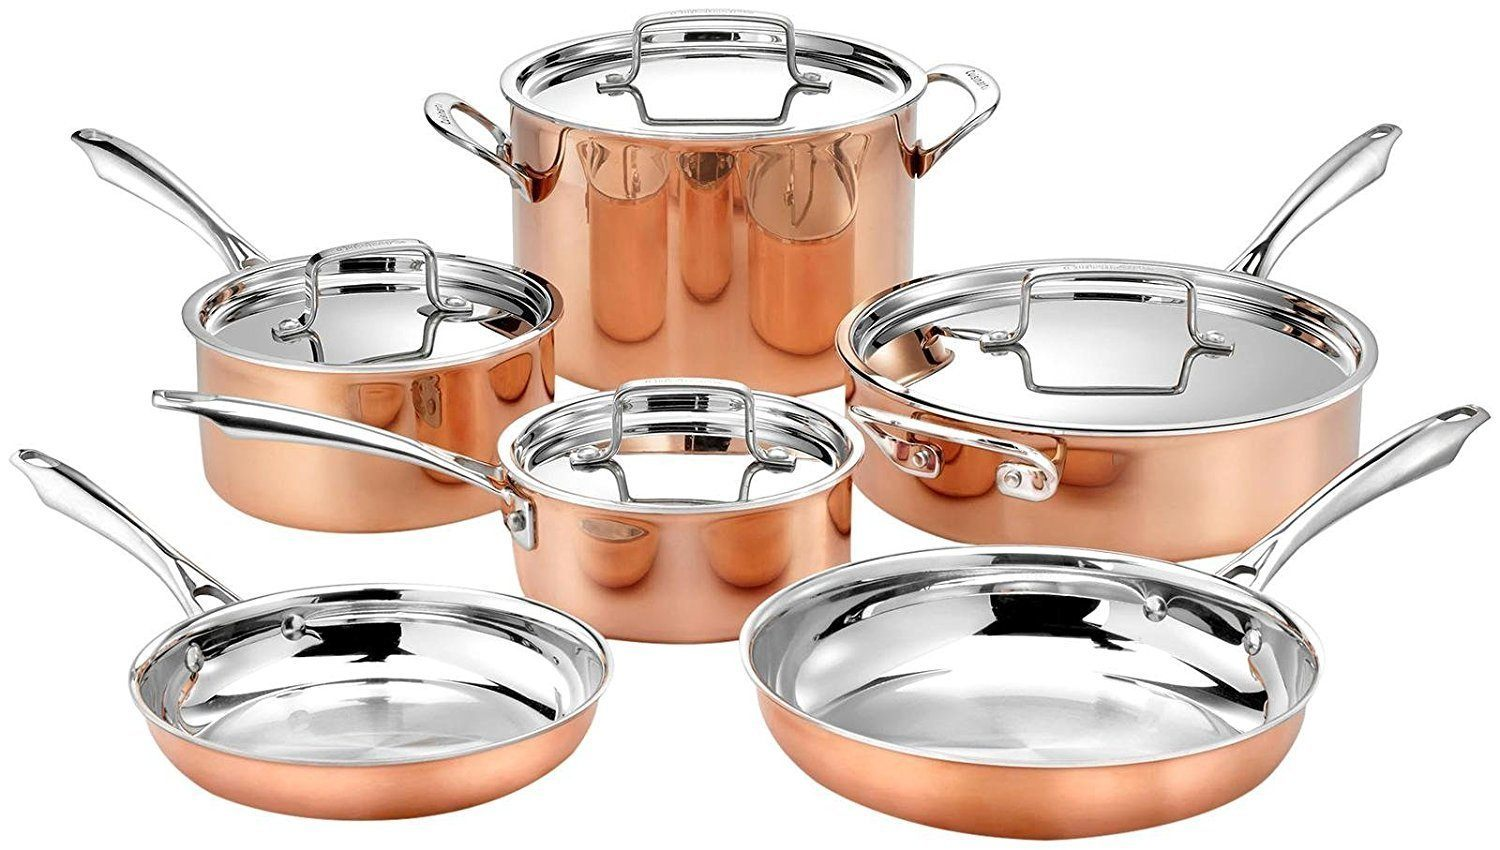 The Best Cookware Set For Every Budget